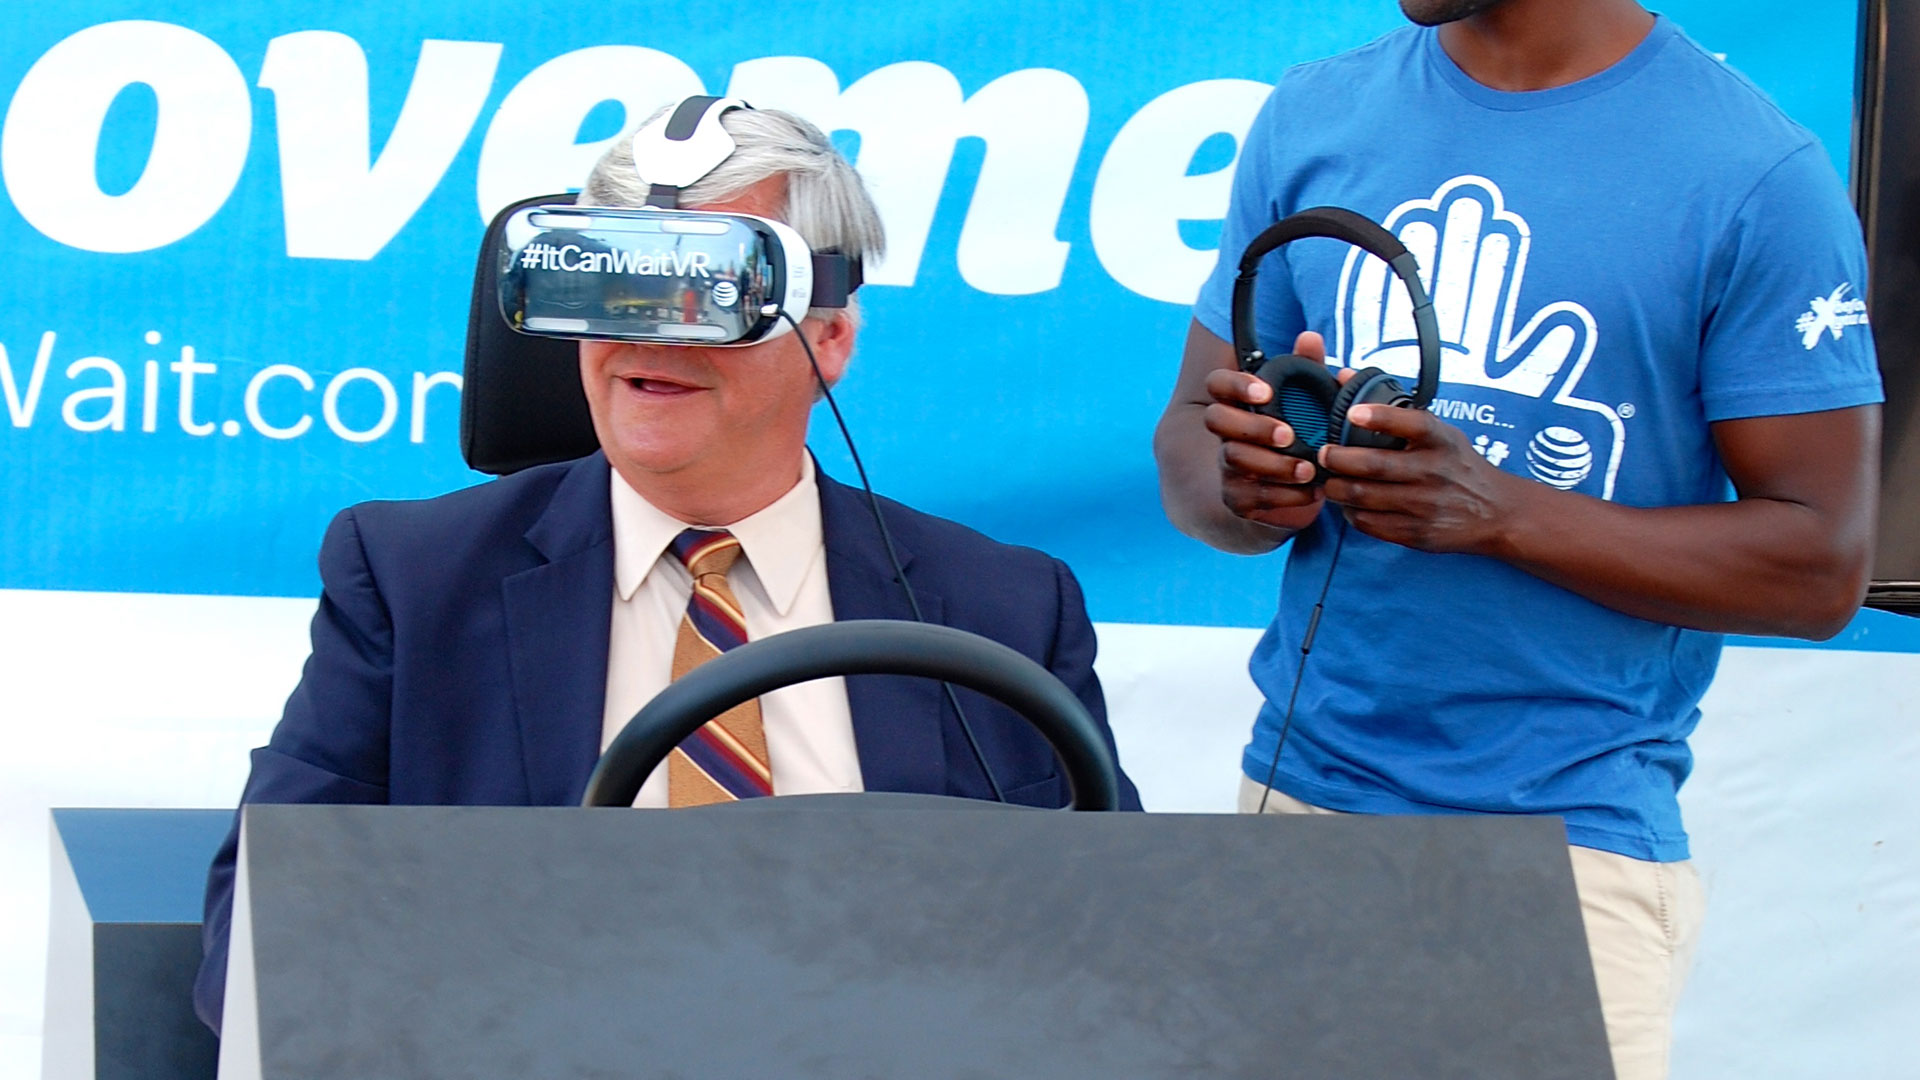 The AT&T VR Driving simulator.